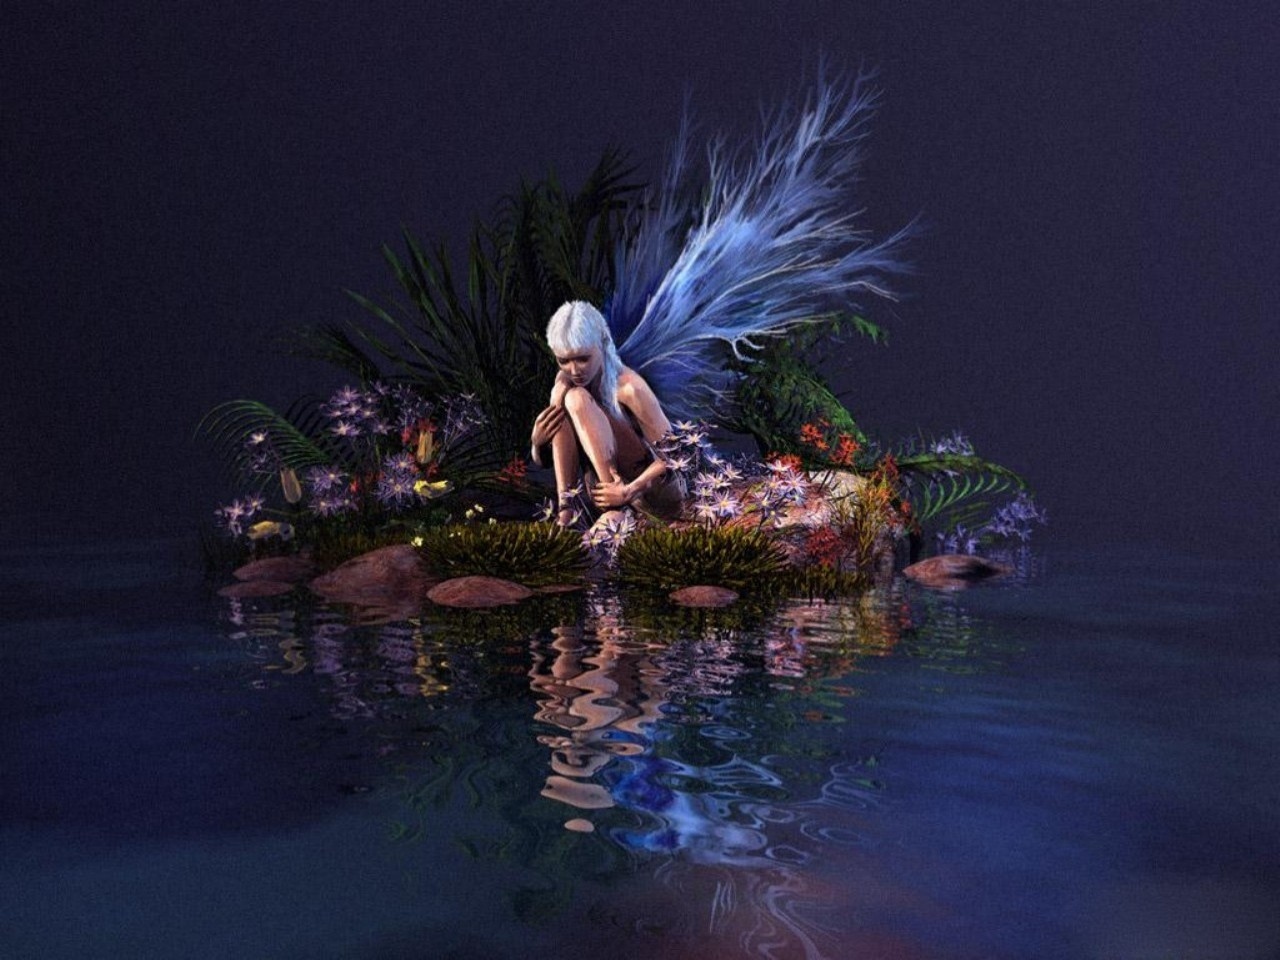 Fairy Computer Wallpapers Desktop Backgrounds 1280x960 1280x960